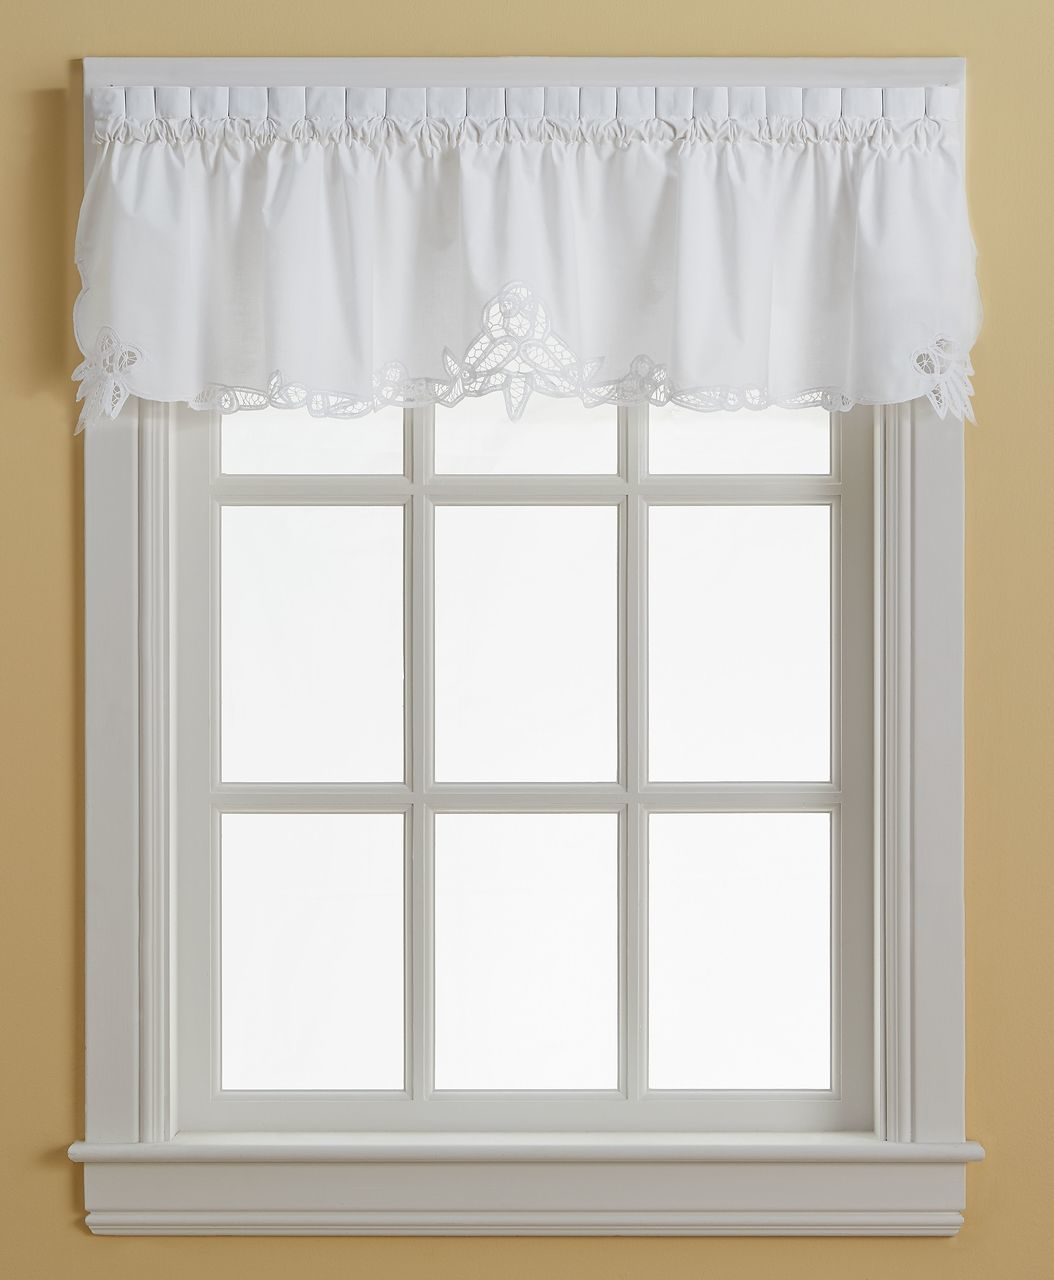 Curtains, Drapes & Valances Home & Garden Crochet Lace Pertaining To Cotton Lace 5 Piece Window Tier And Swag Sets (View 20 of 20)